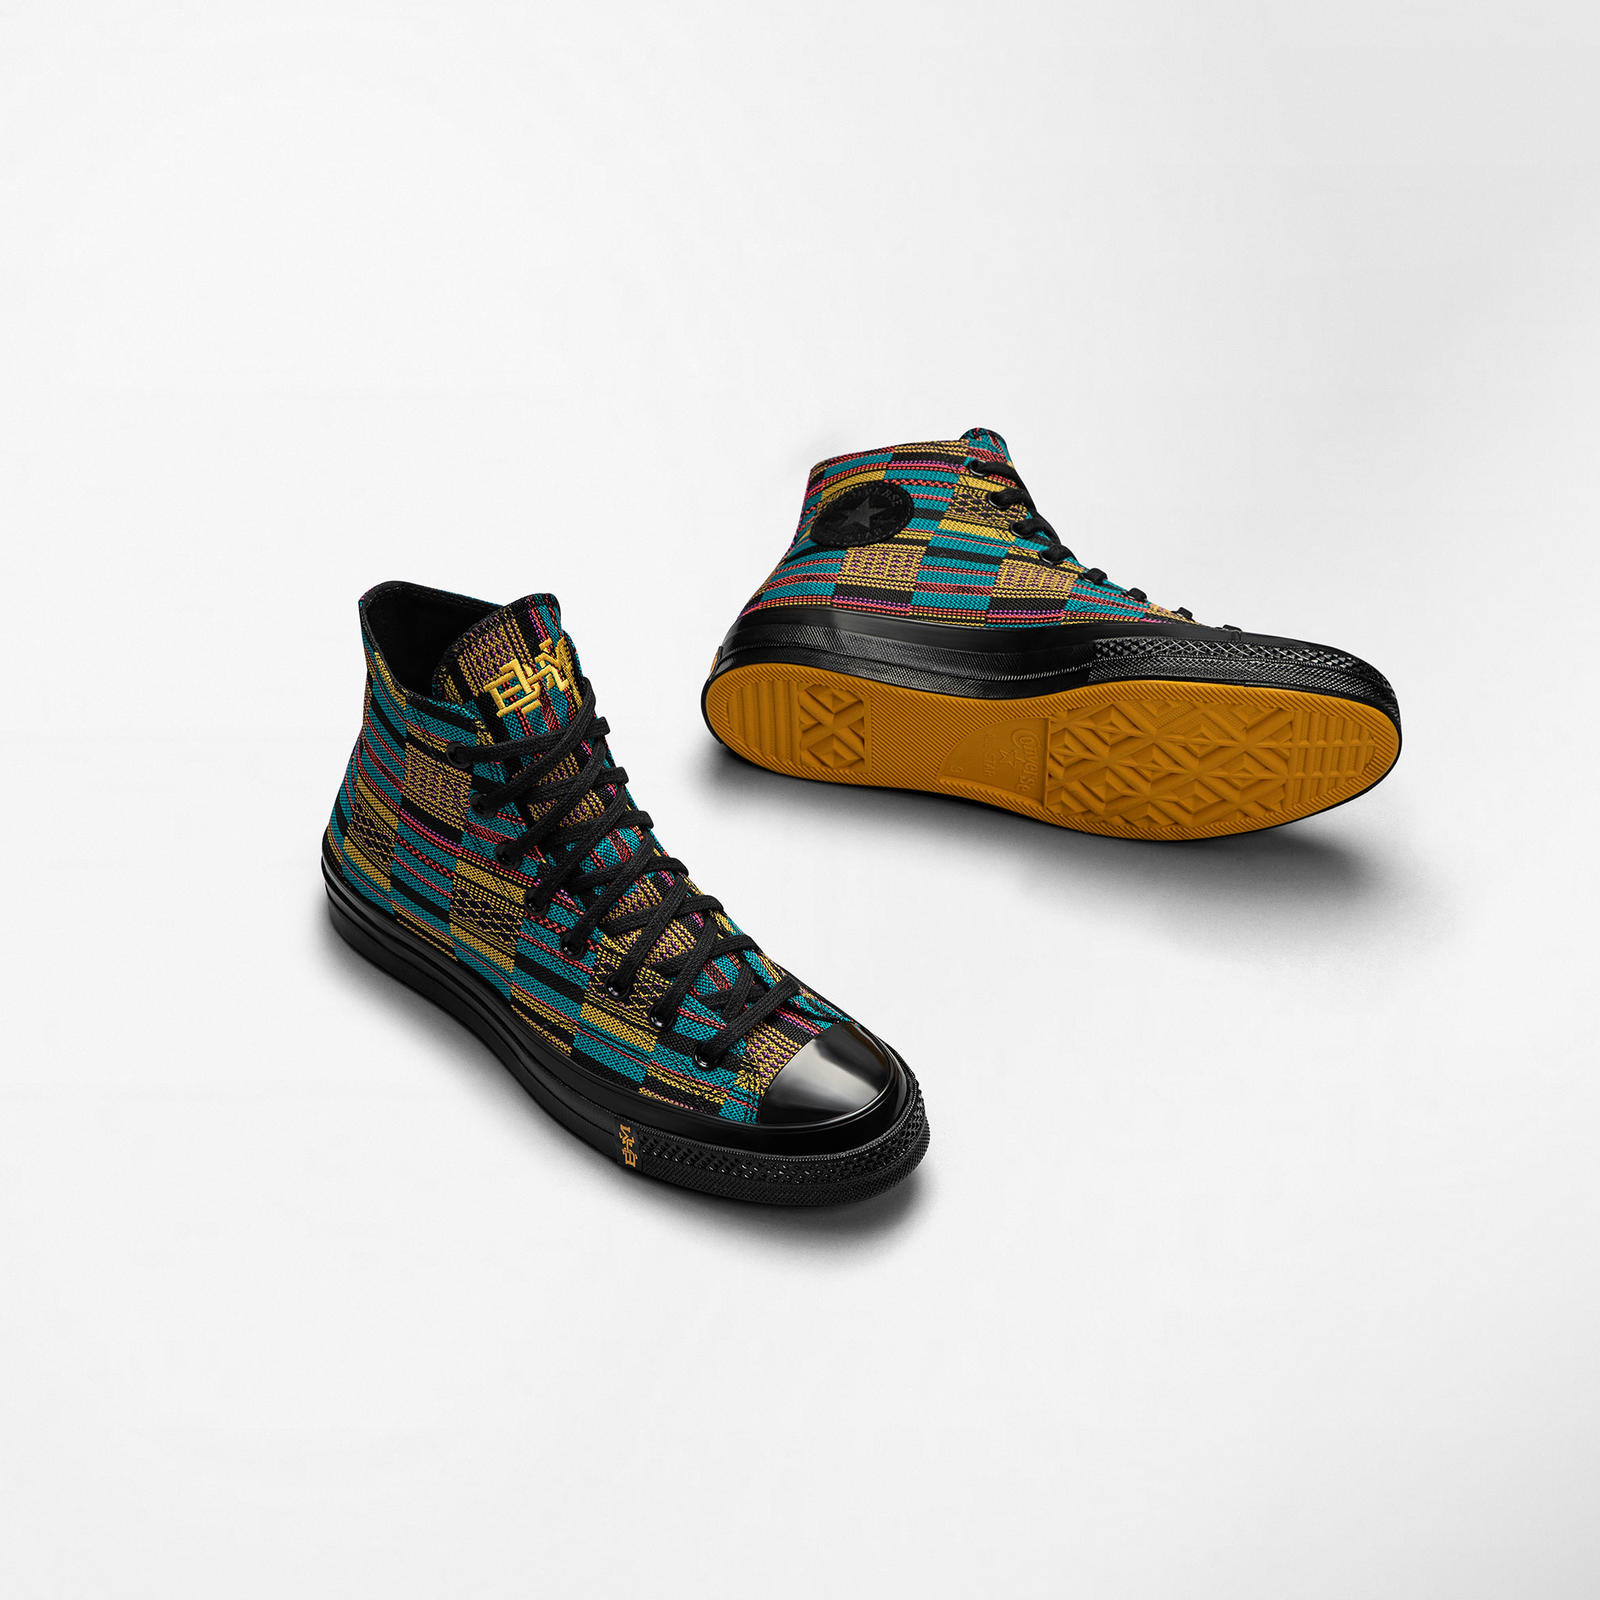 converse chuck 70 high top bhm WearTesters